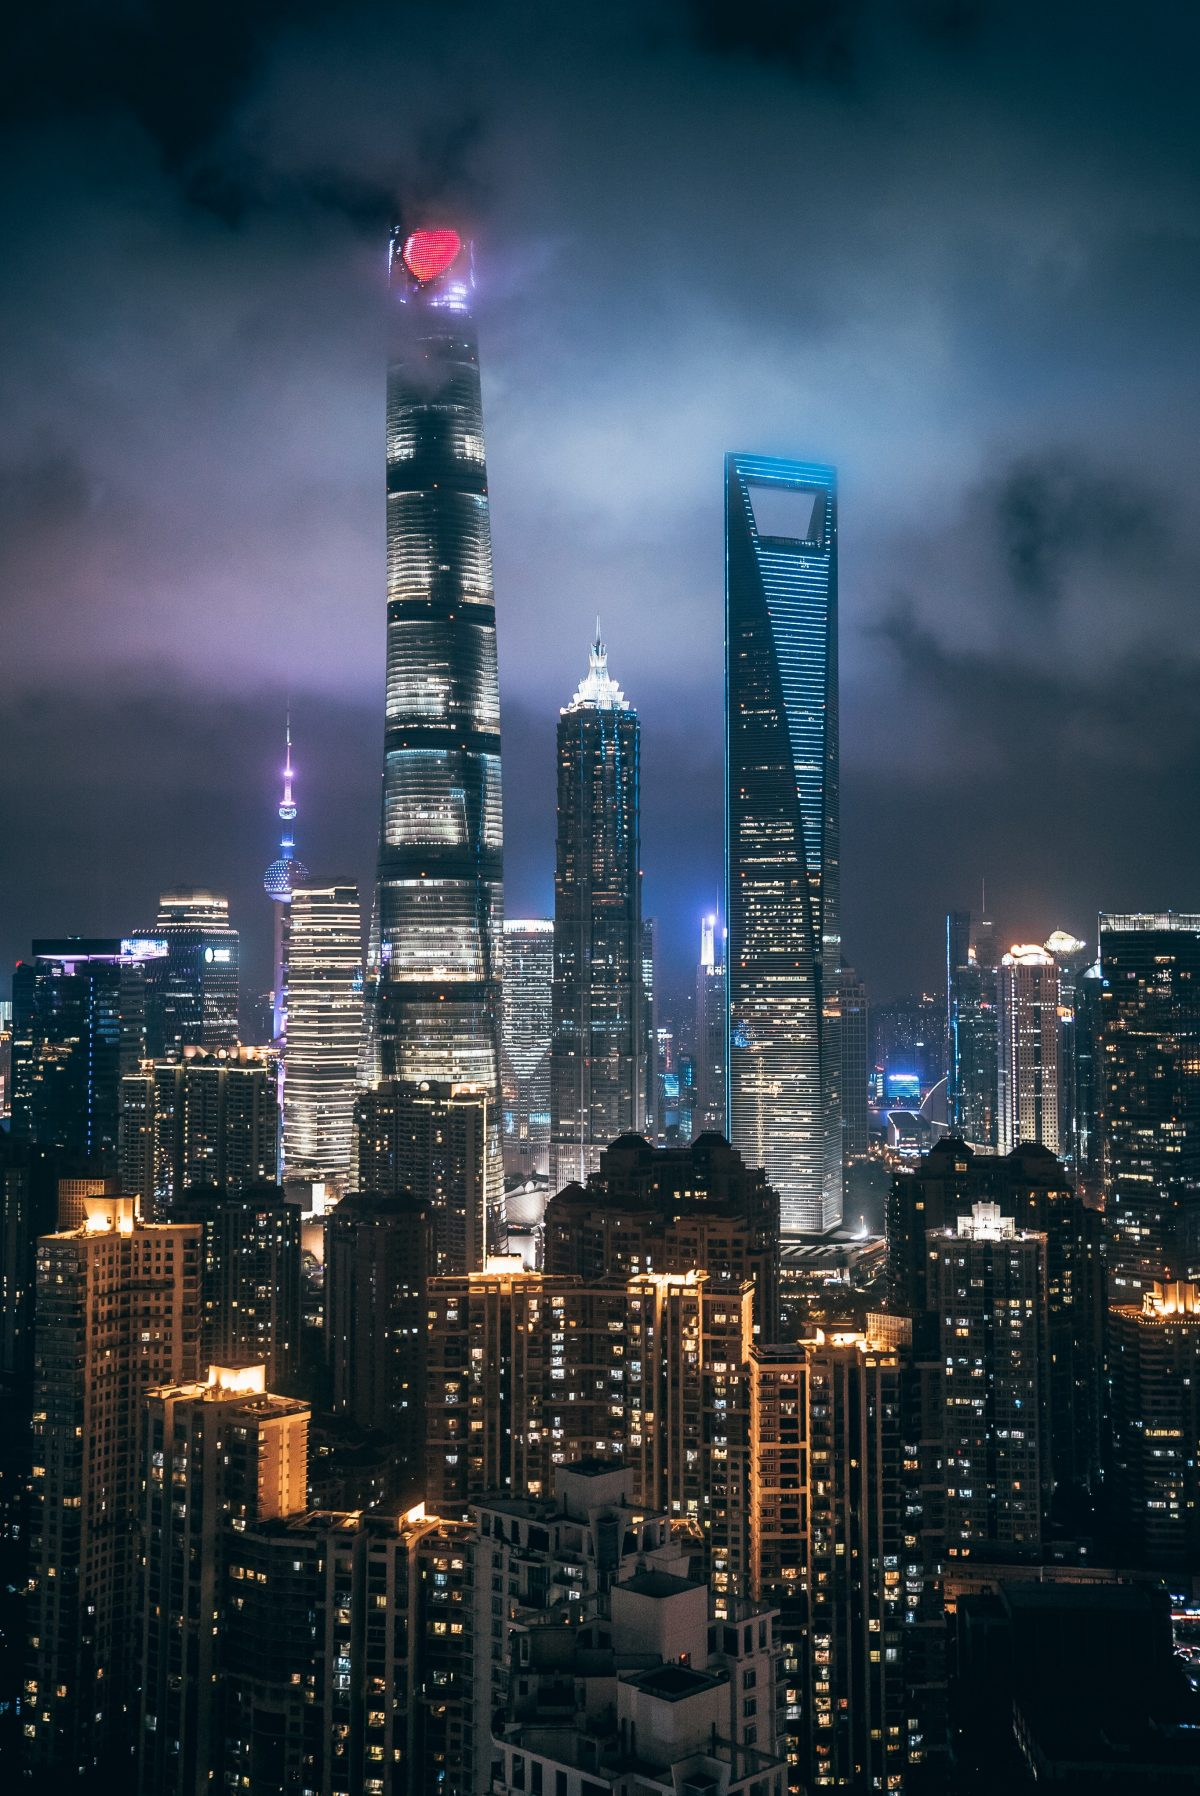 The world's first skyscraper trio towering over other buildings in Shanghai with the night skyline in the background